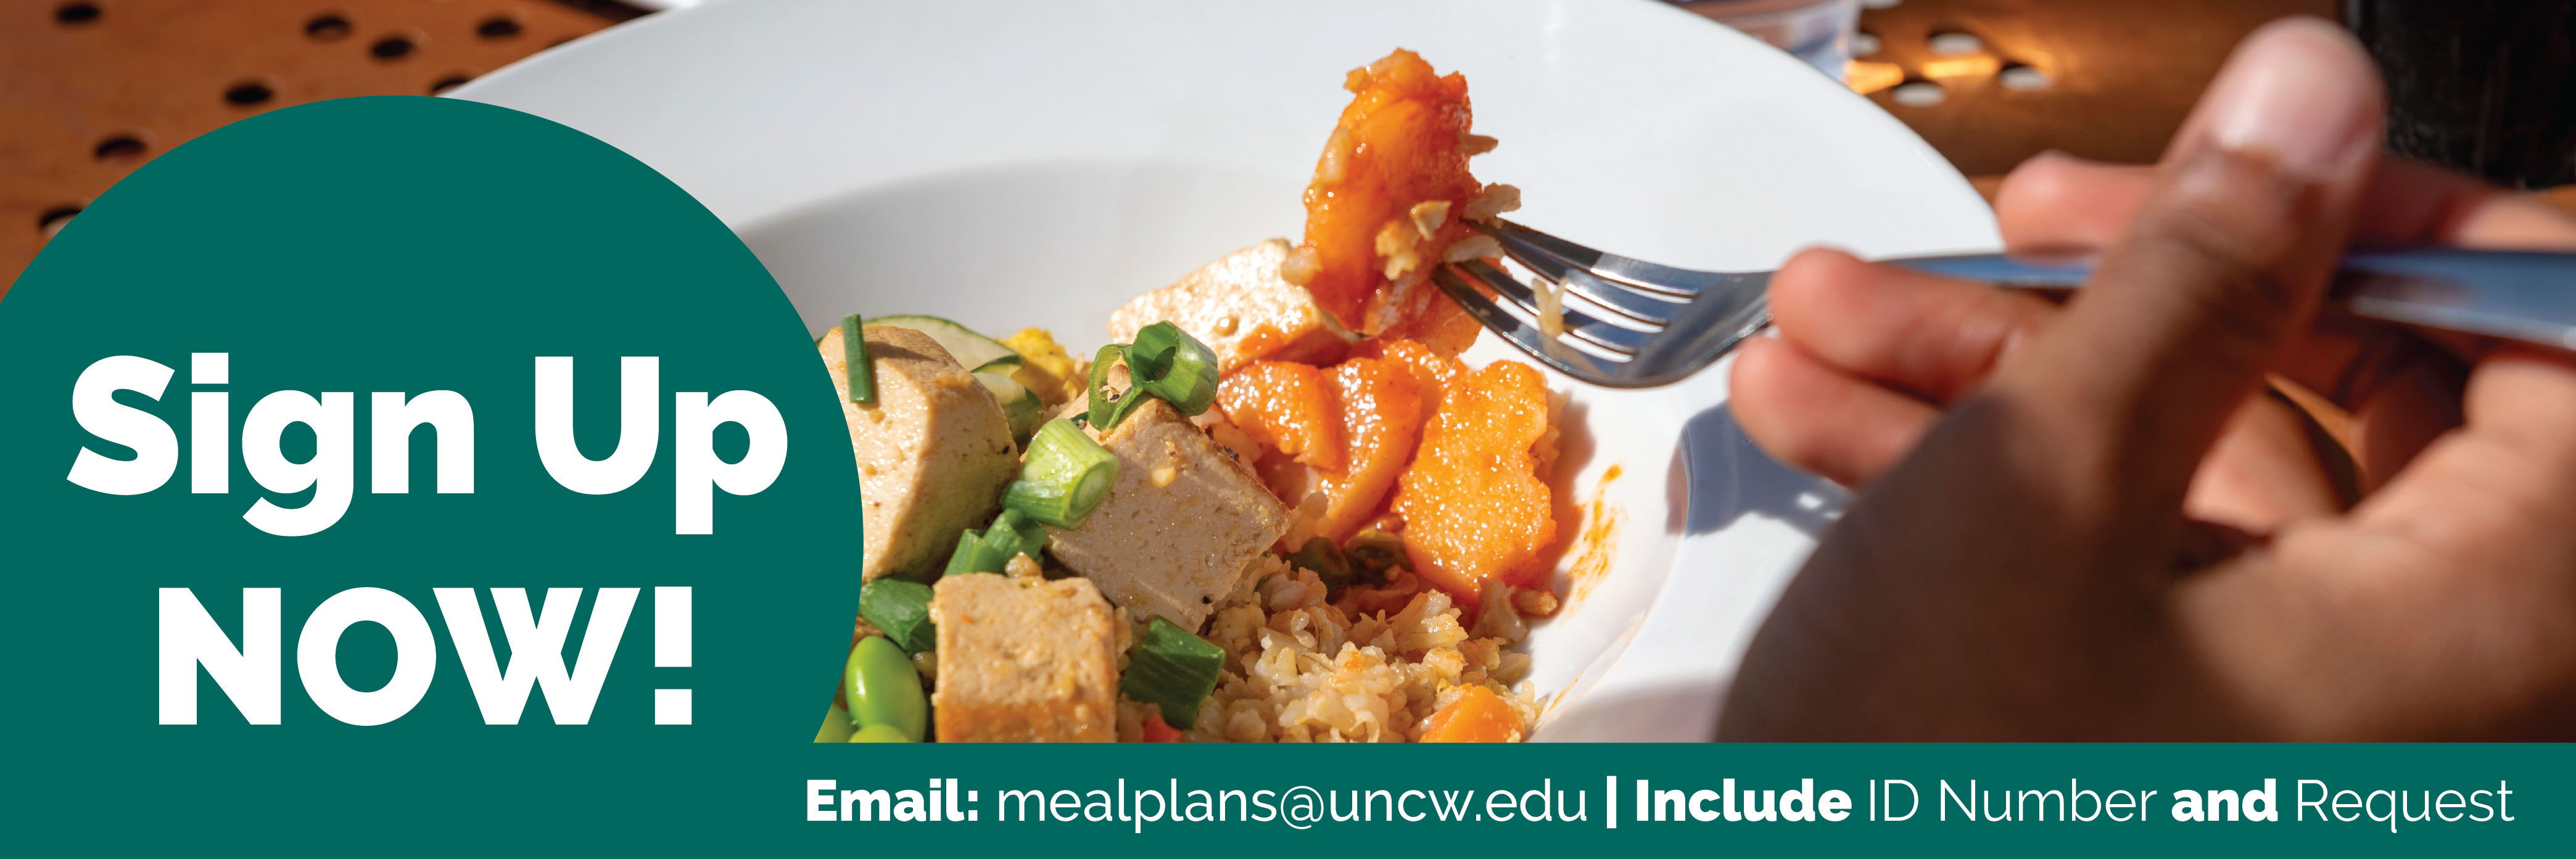 Sign up now! Email mealplans@uncw.edu; include ID number and request